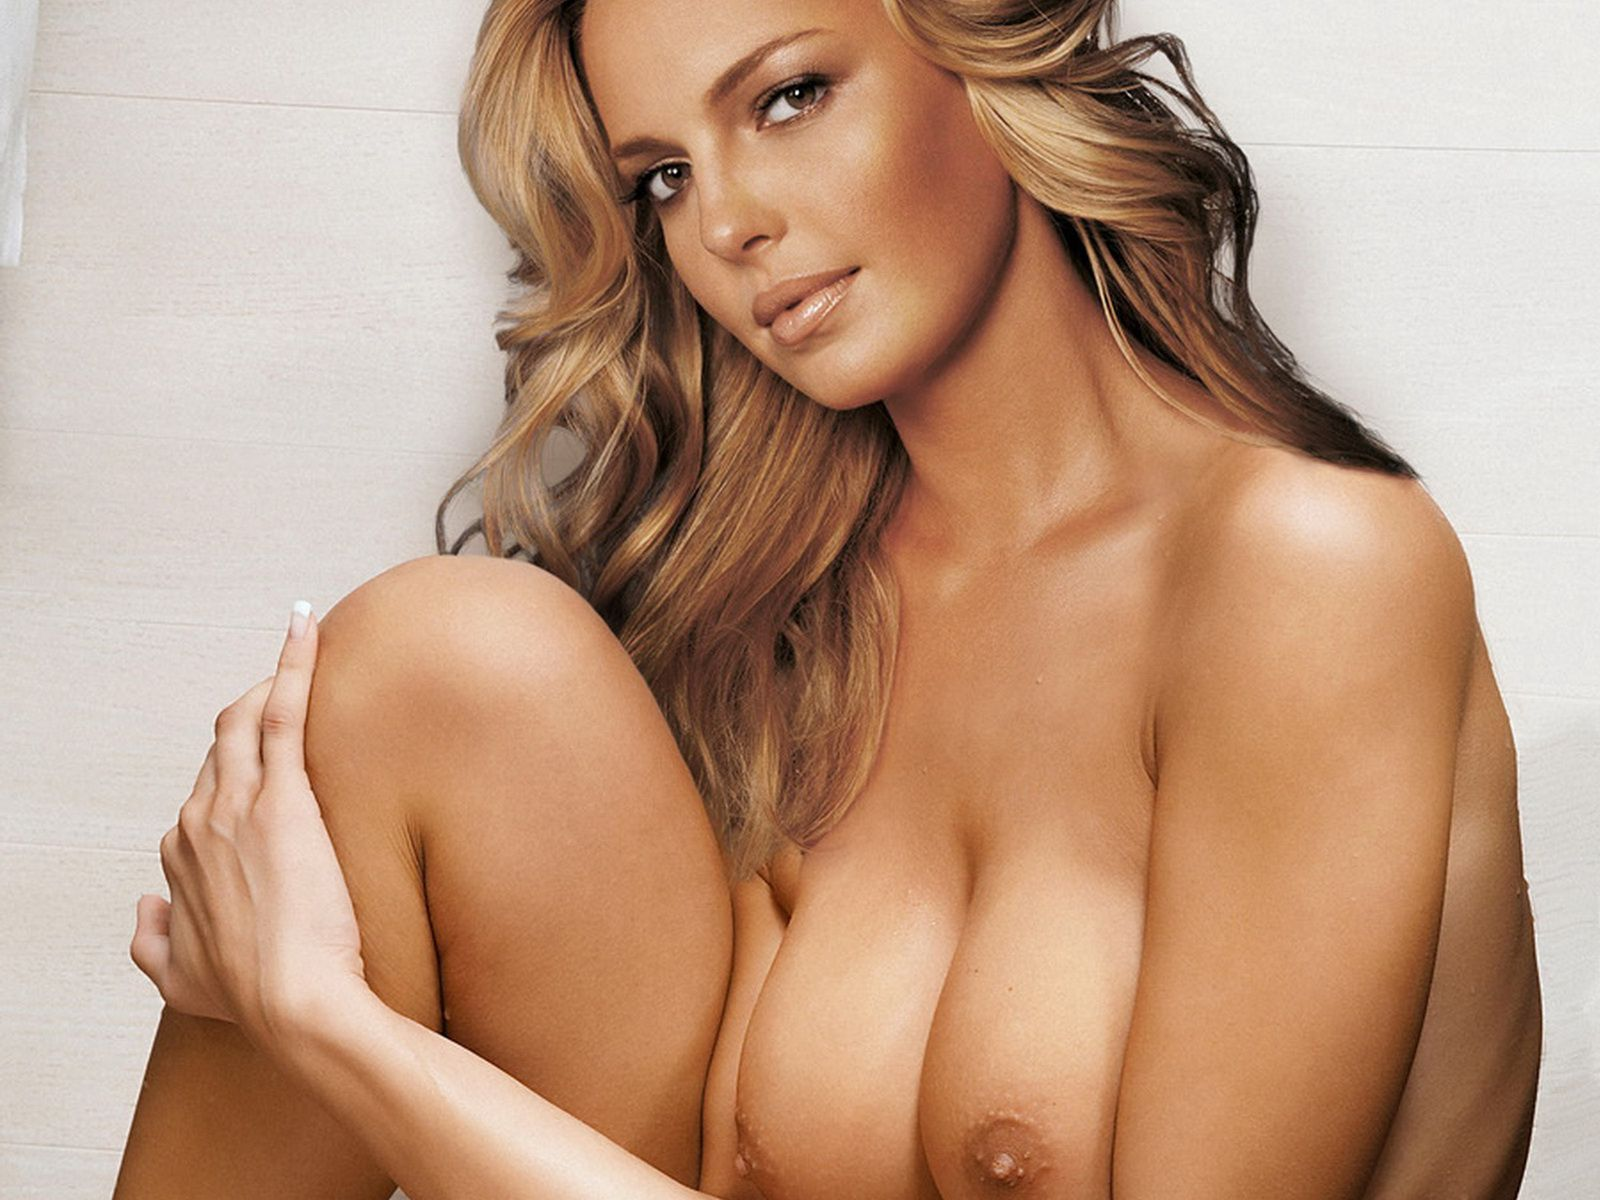 Katherine Heigl naked spread legs show big boobs and trimmed pussy UHQ.jpg